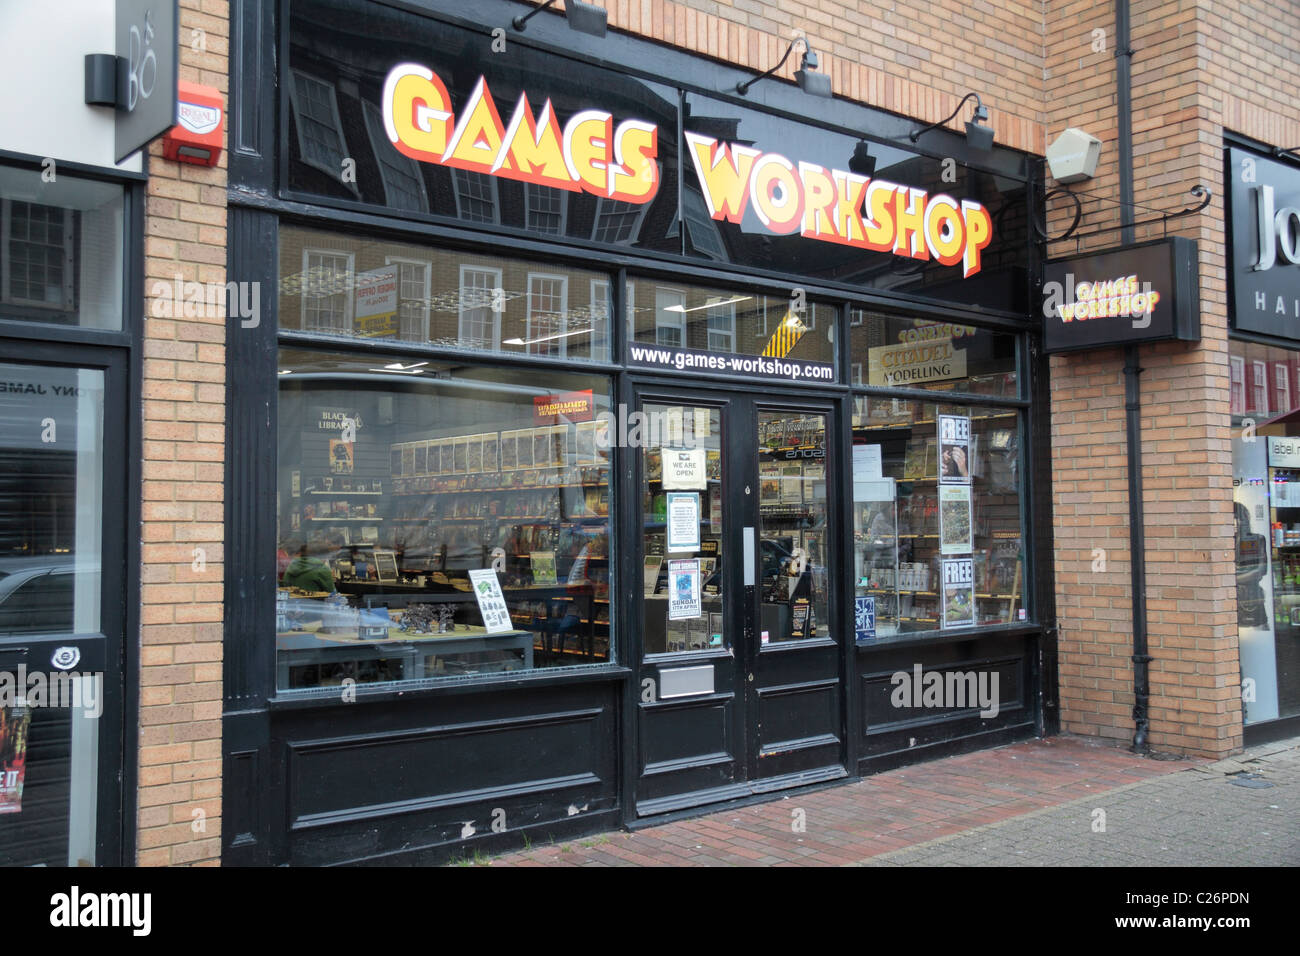 Games Workshop The Games Workshop Store In Kingston Upon Thames London